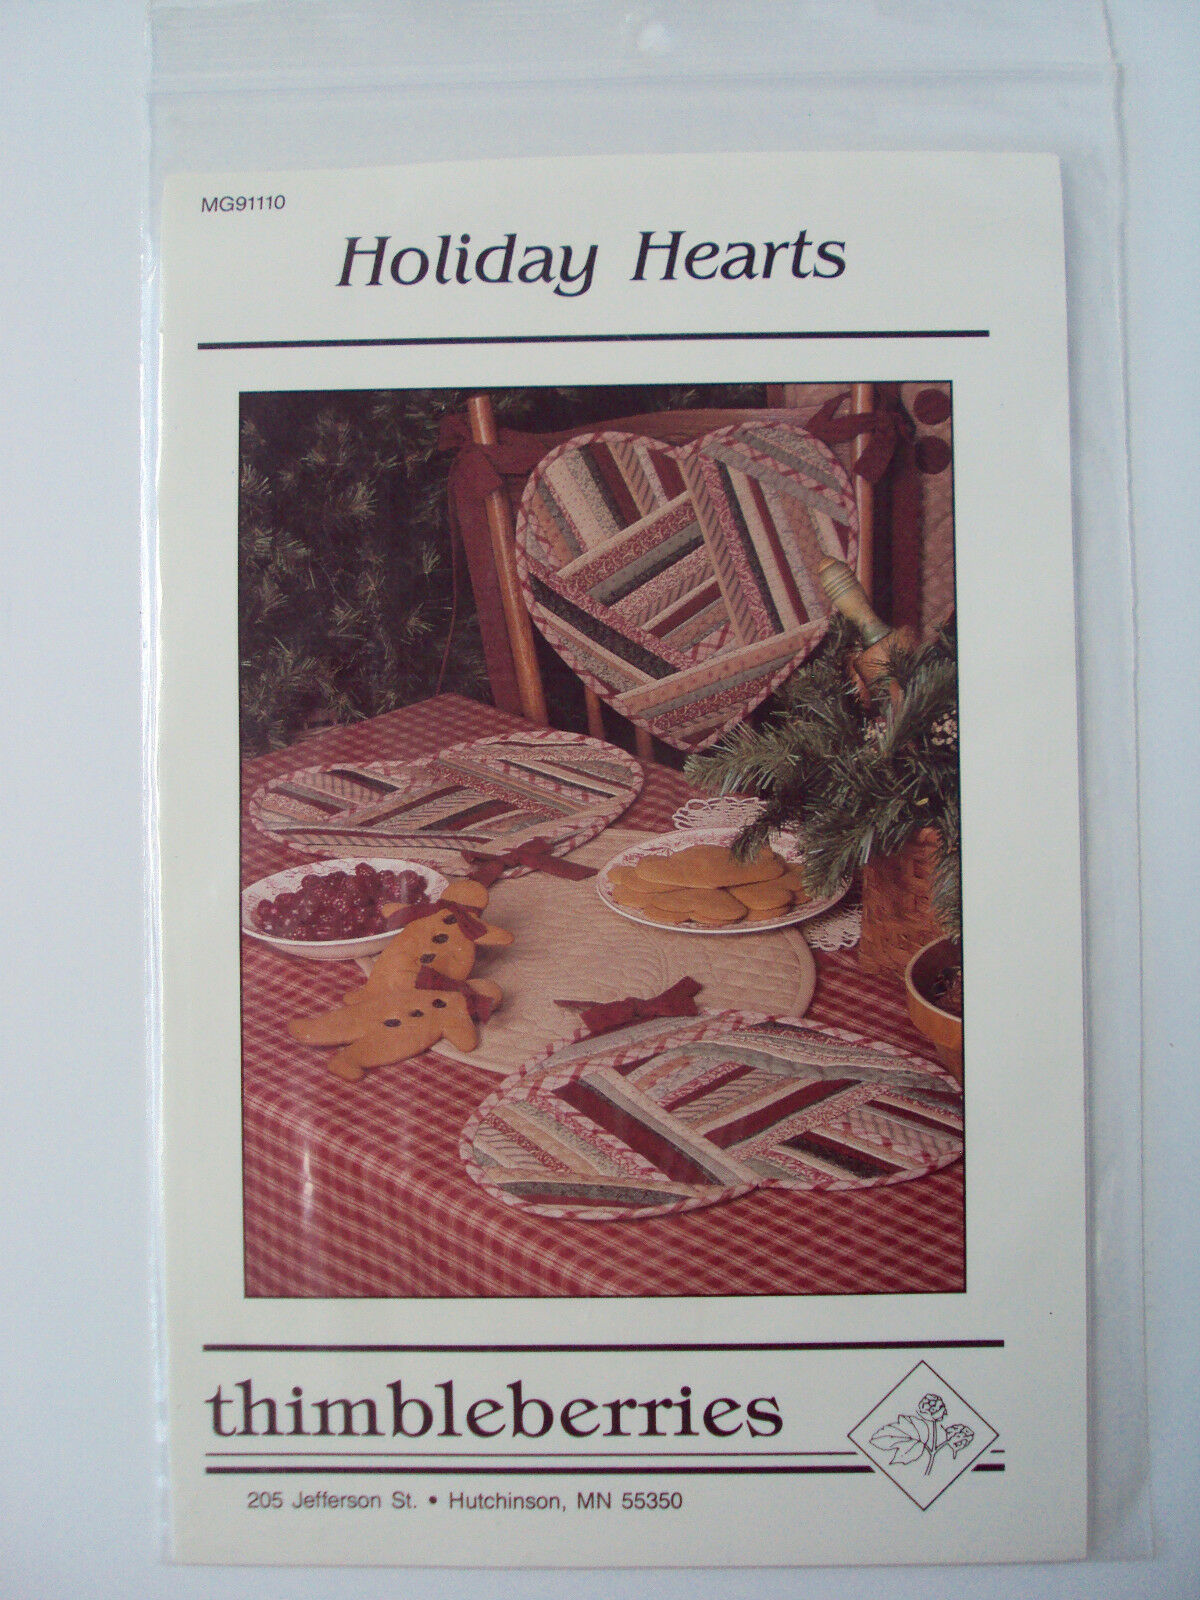 Holiday Hearts Thimbleberries Crazy Quilt Placemat Tablerunner Chair Valentines - $4.71